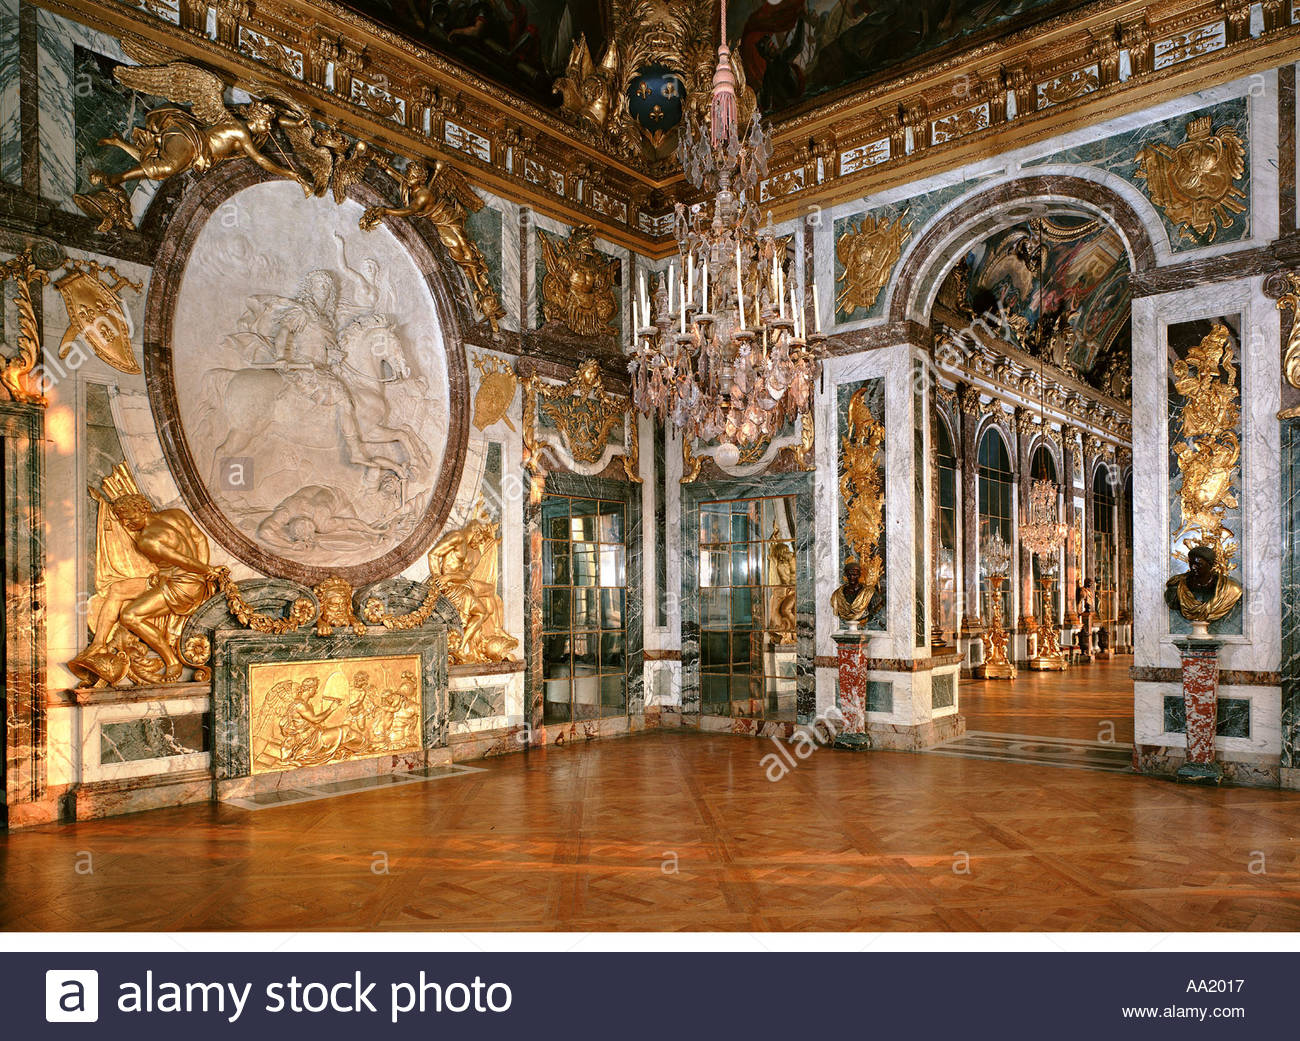 Palace of versailles salon de la guerre stock photo for Salon de la photo